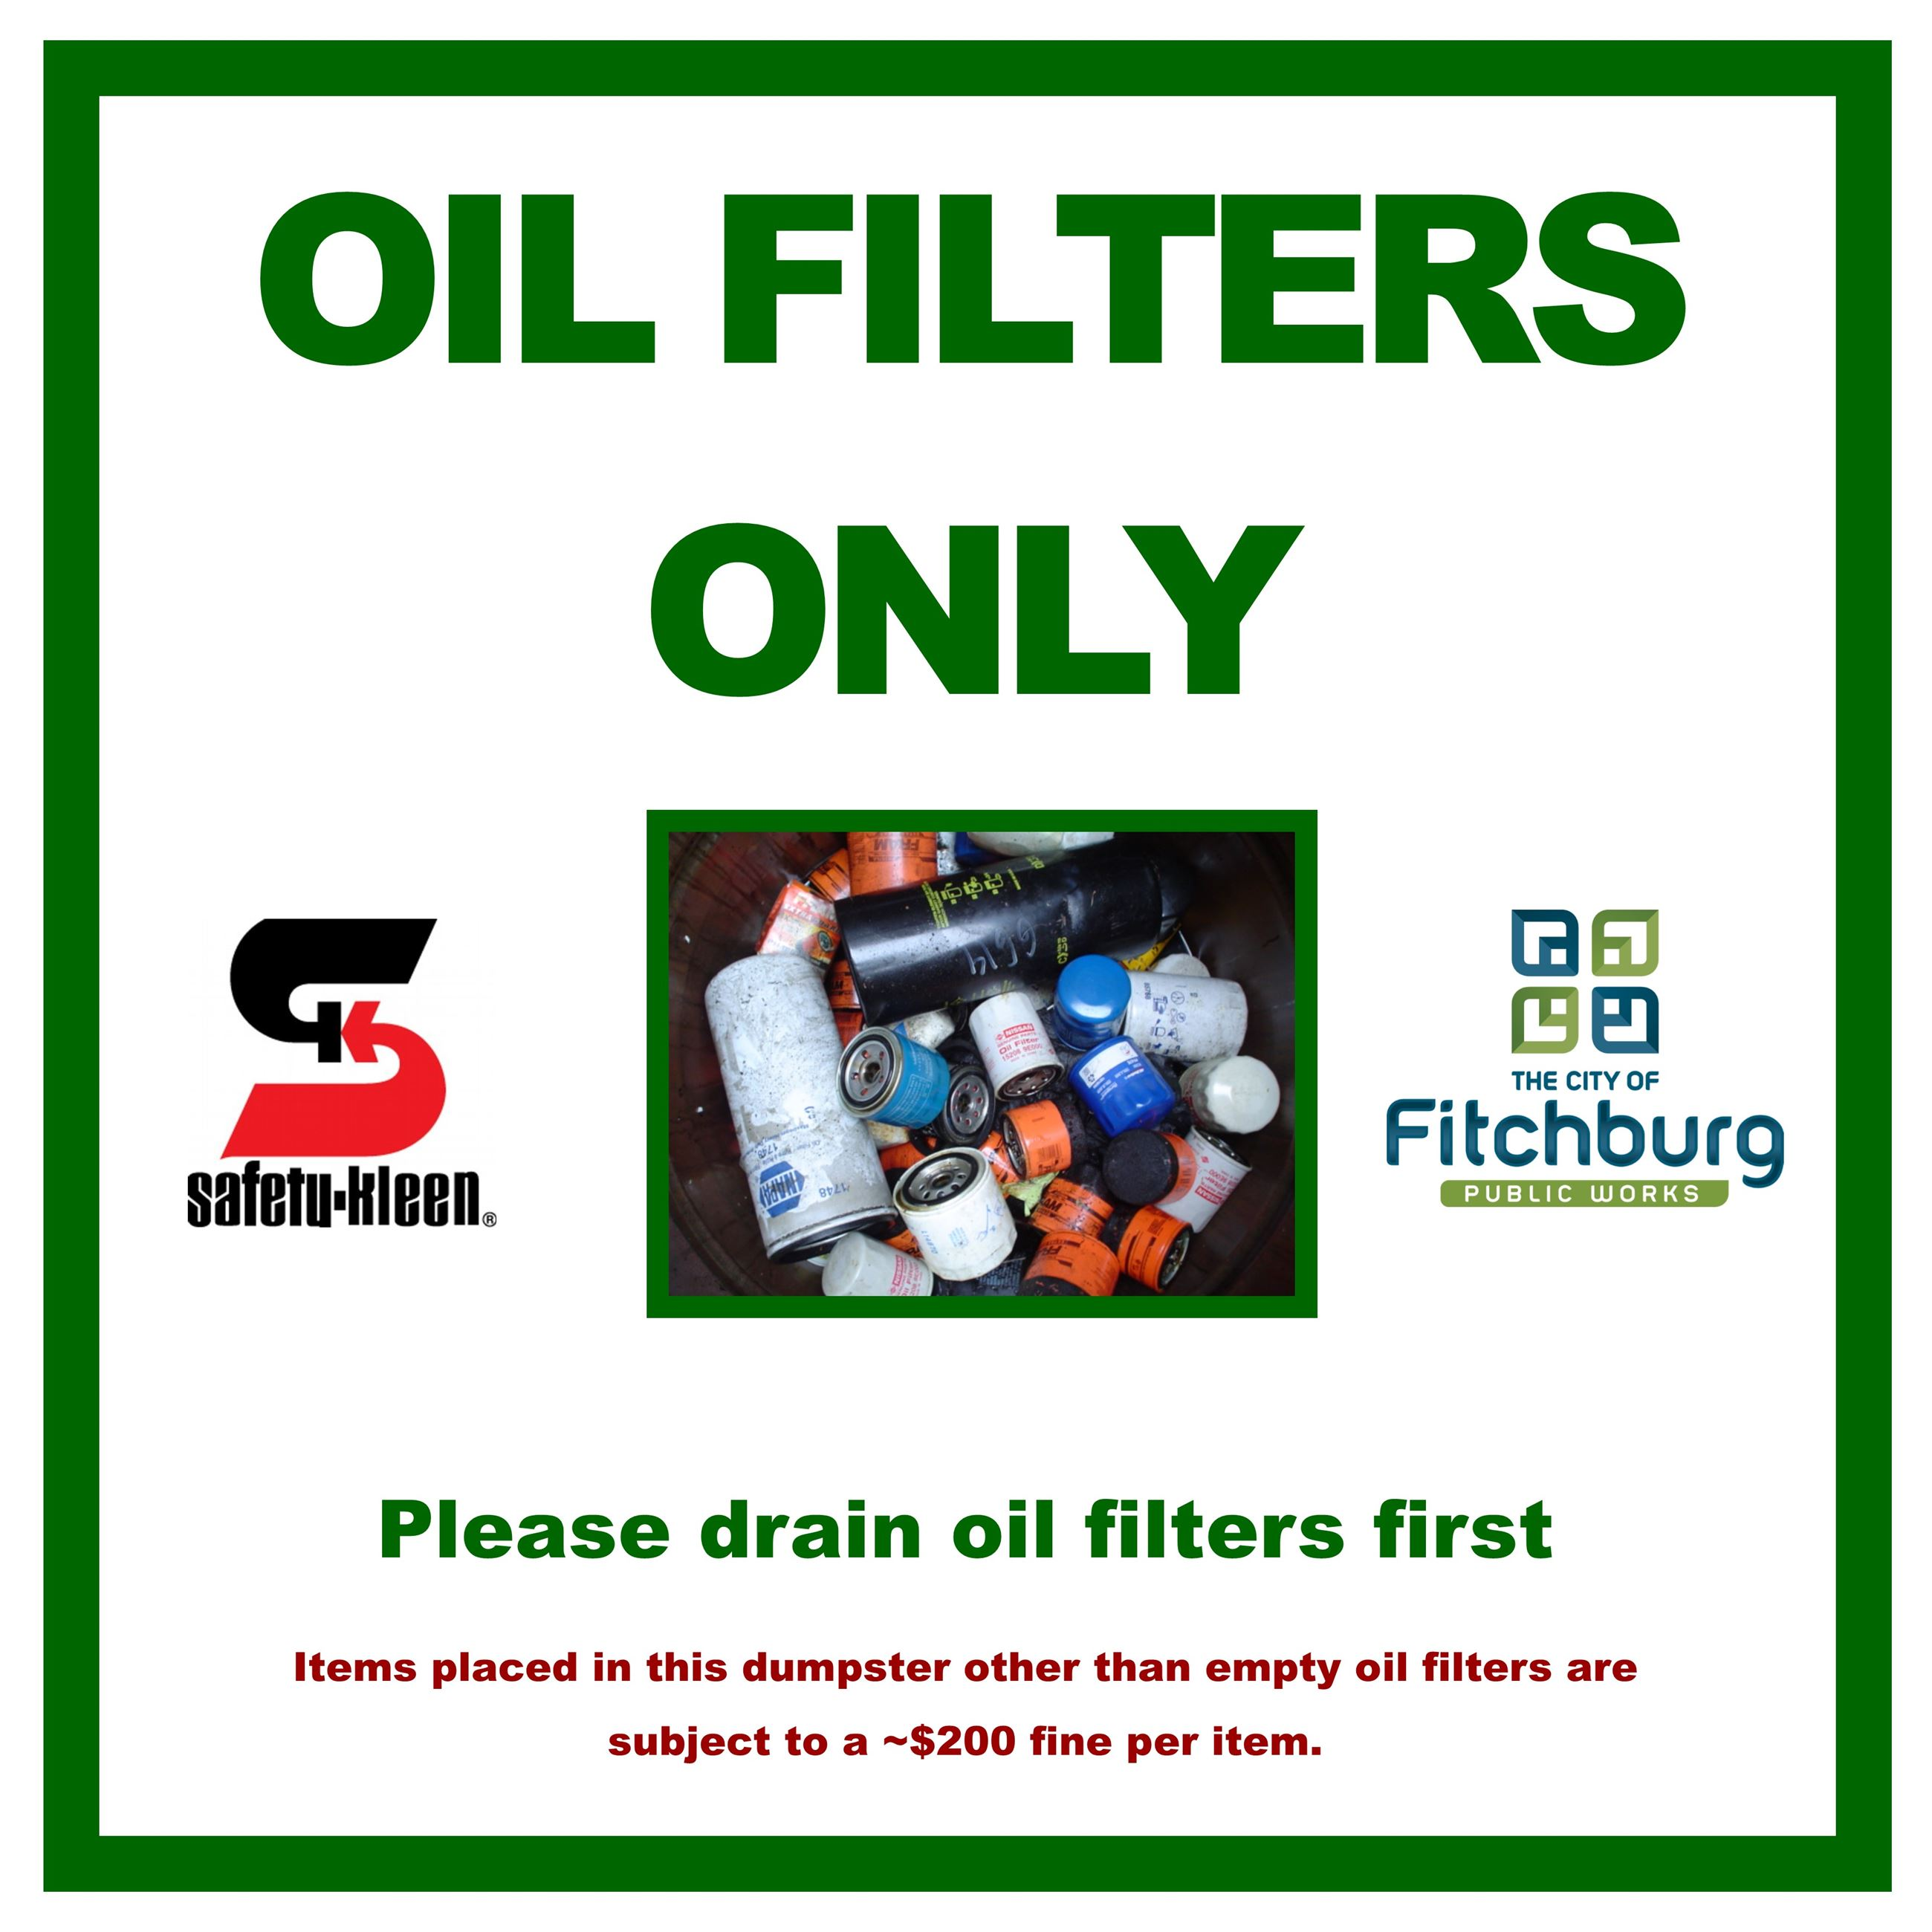 Oil Filters Only Aluminum Sign 2x2 2015-12-14